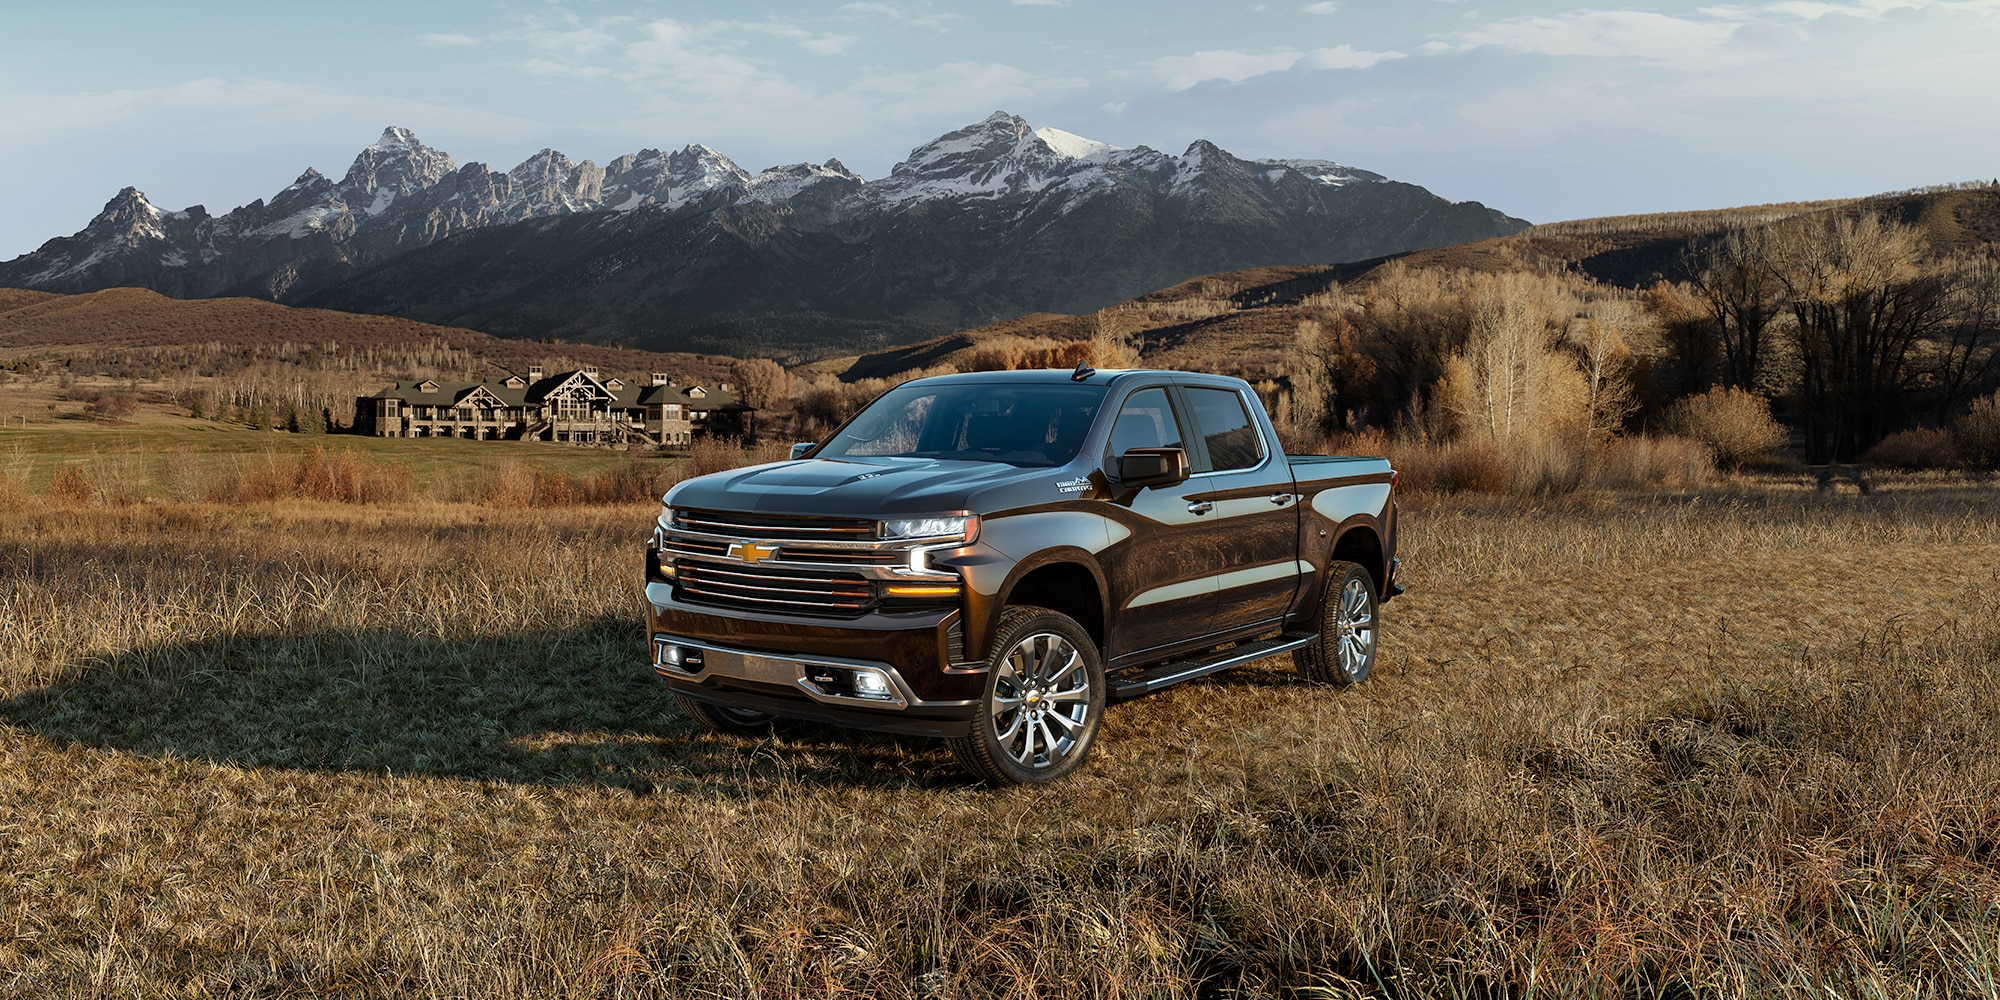 2020 Chevrolet Silverado 1500 Exterior Features